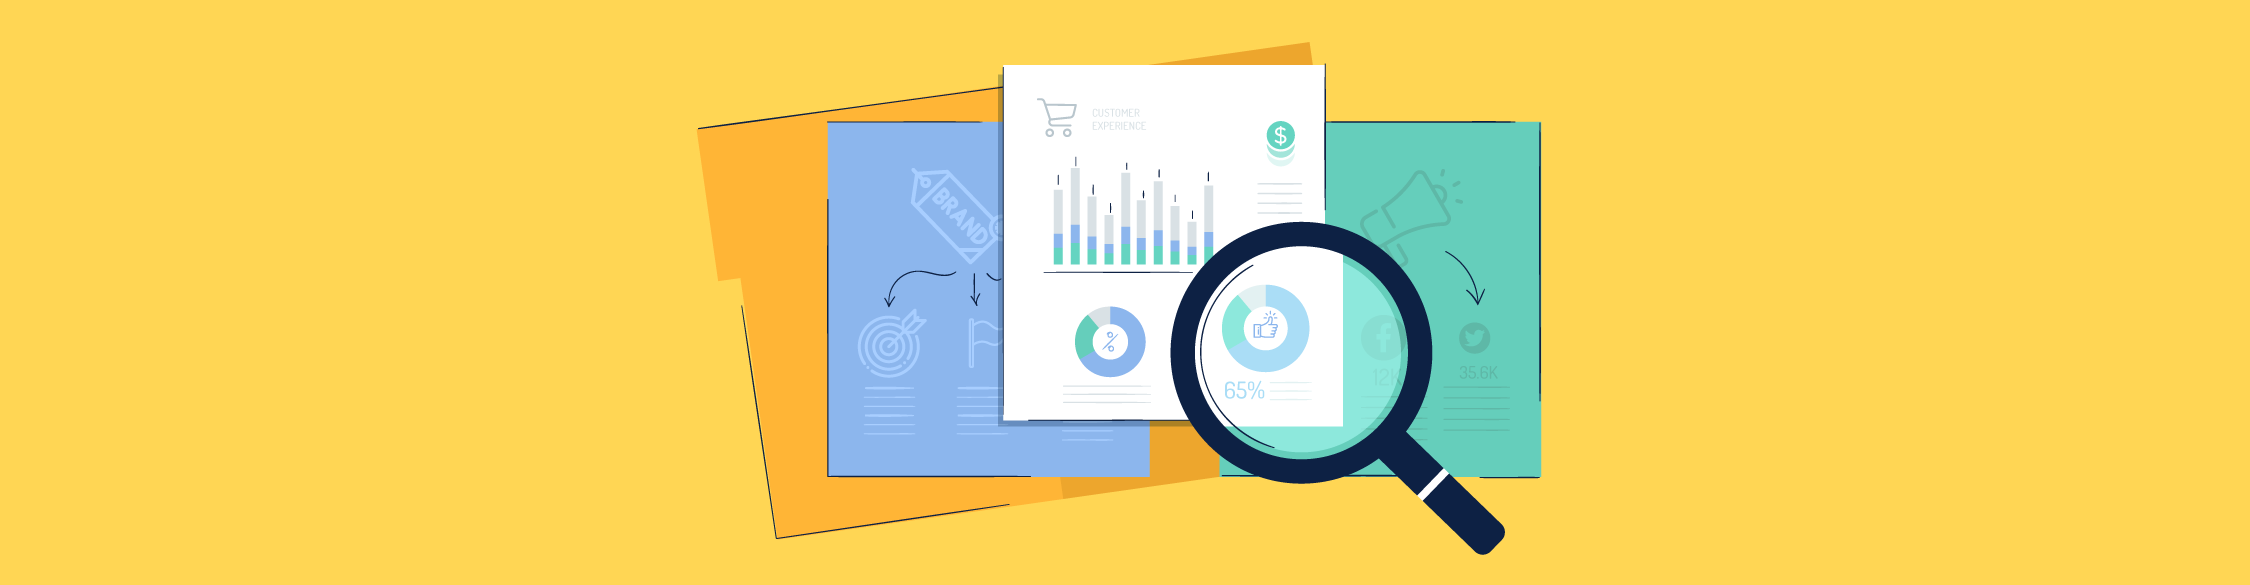 How to Conduct a Brand Audit: Step-by-Step Guide + Template